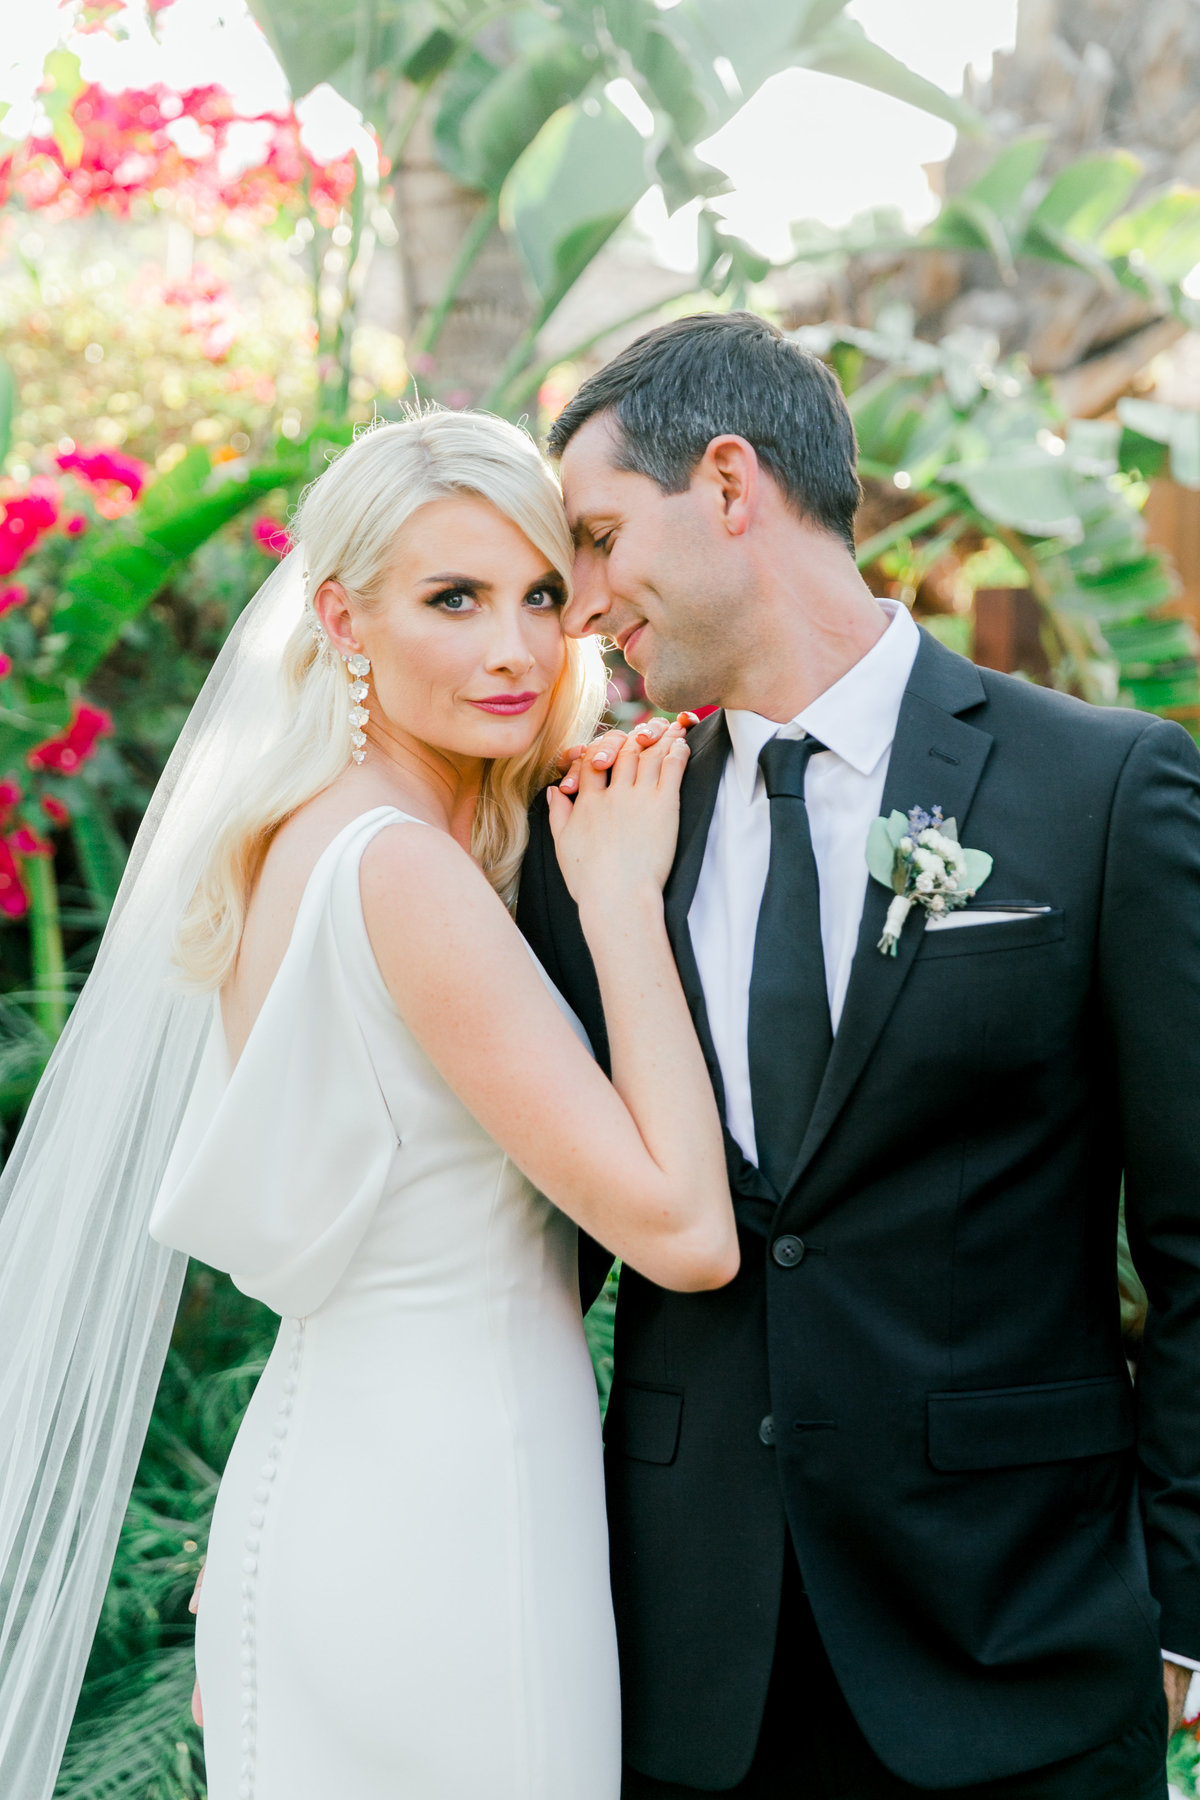 Karlie Colleen Photography - Arizona Wedding - Royal Palms Resort- Alex & Alex-132